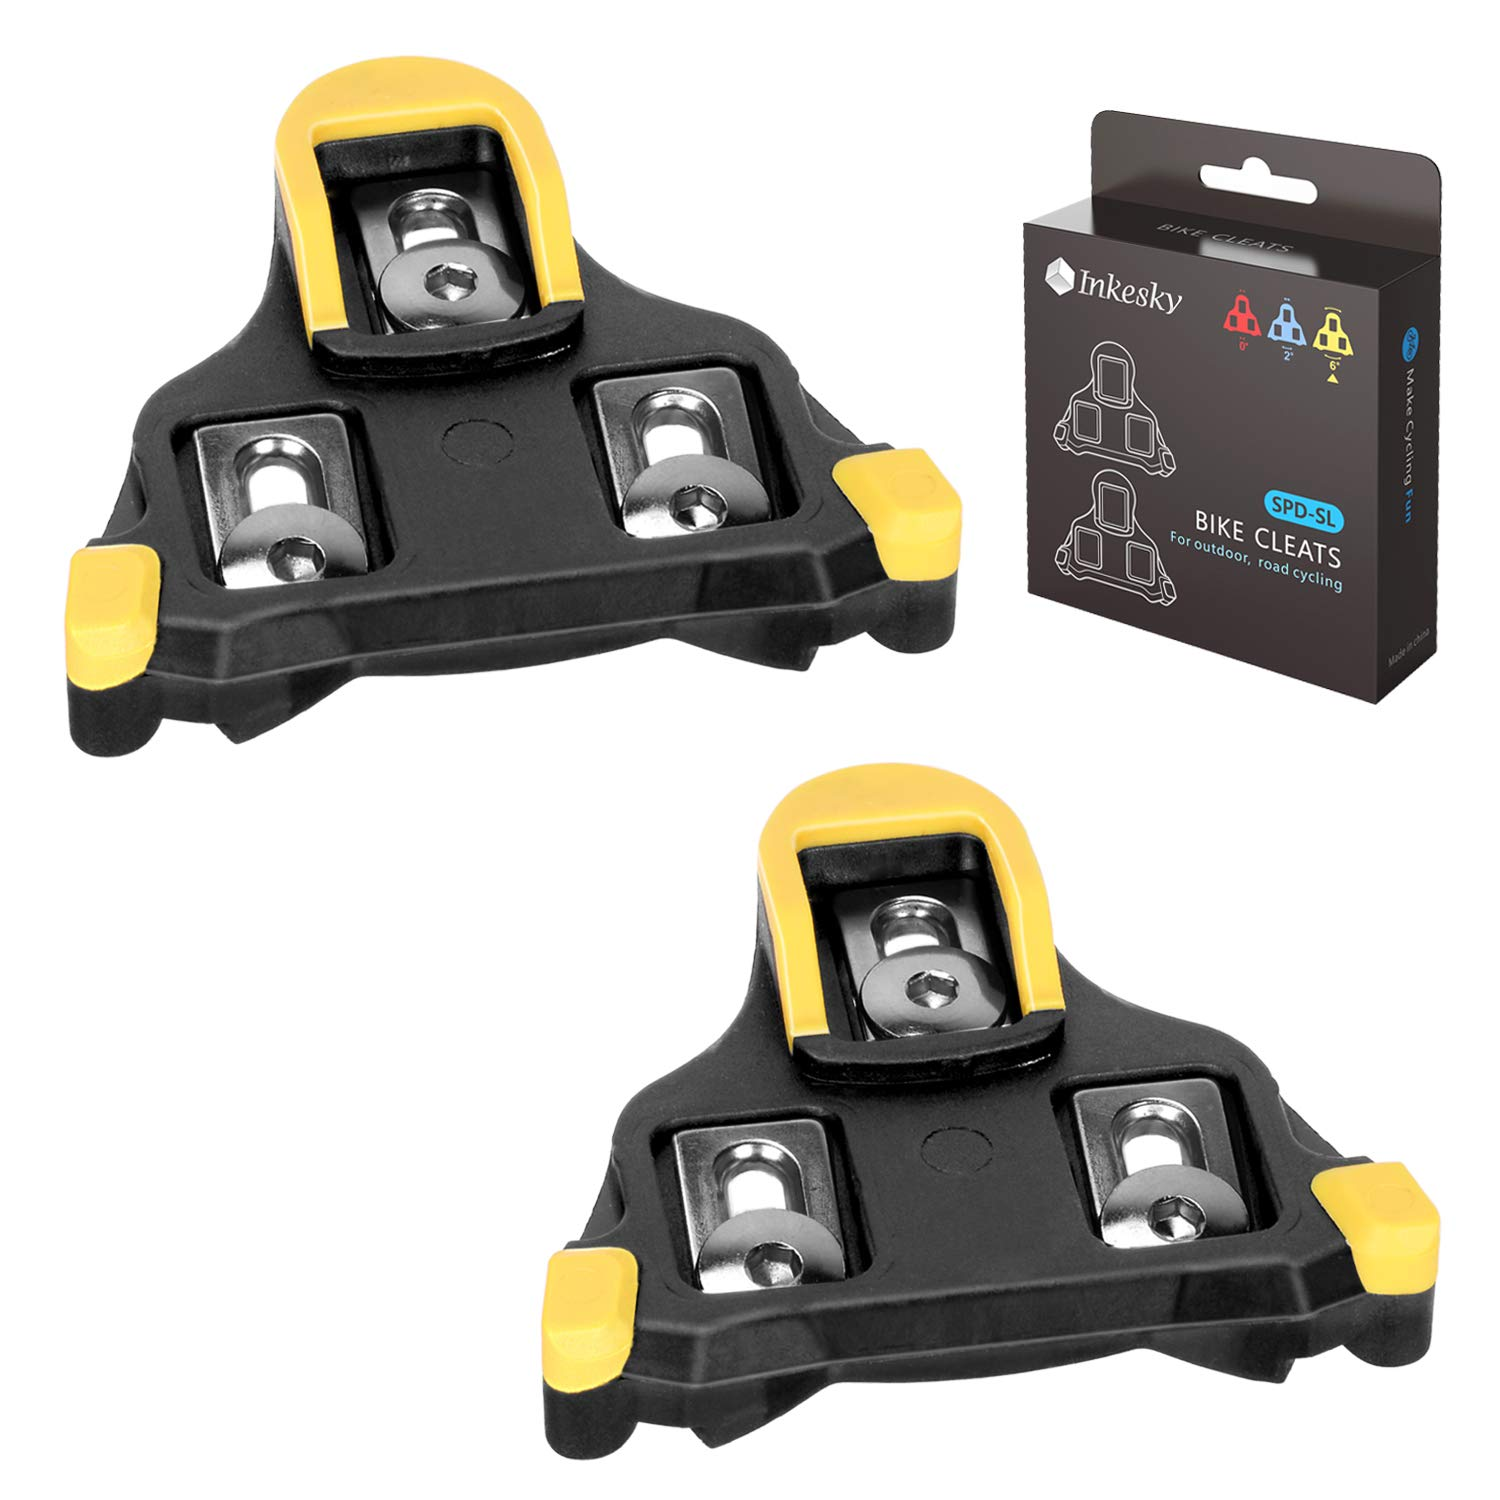 Inkesky Bike Cleats SPD-SL for Road Cycling - Compatible with Shimano SM-SH11 - Yellow by Inkesky